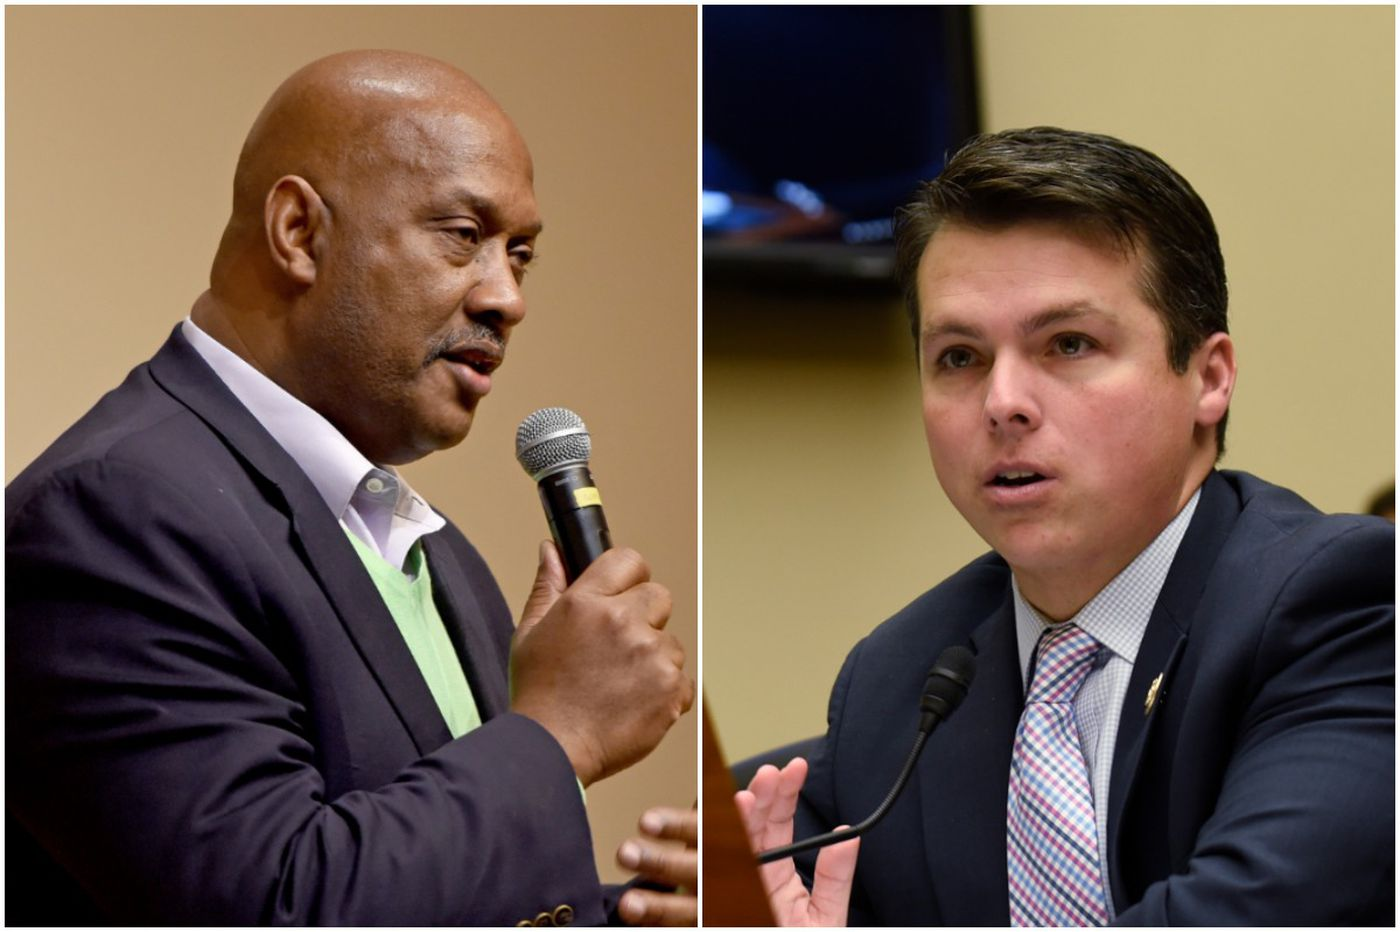 Amid change in Congress, Philly's Brendan Boyle, Dwight Evans vie for power